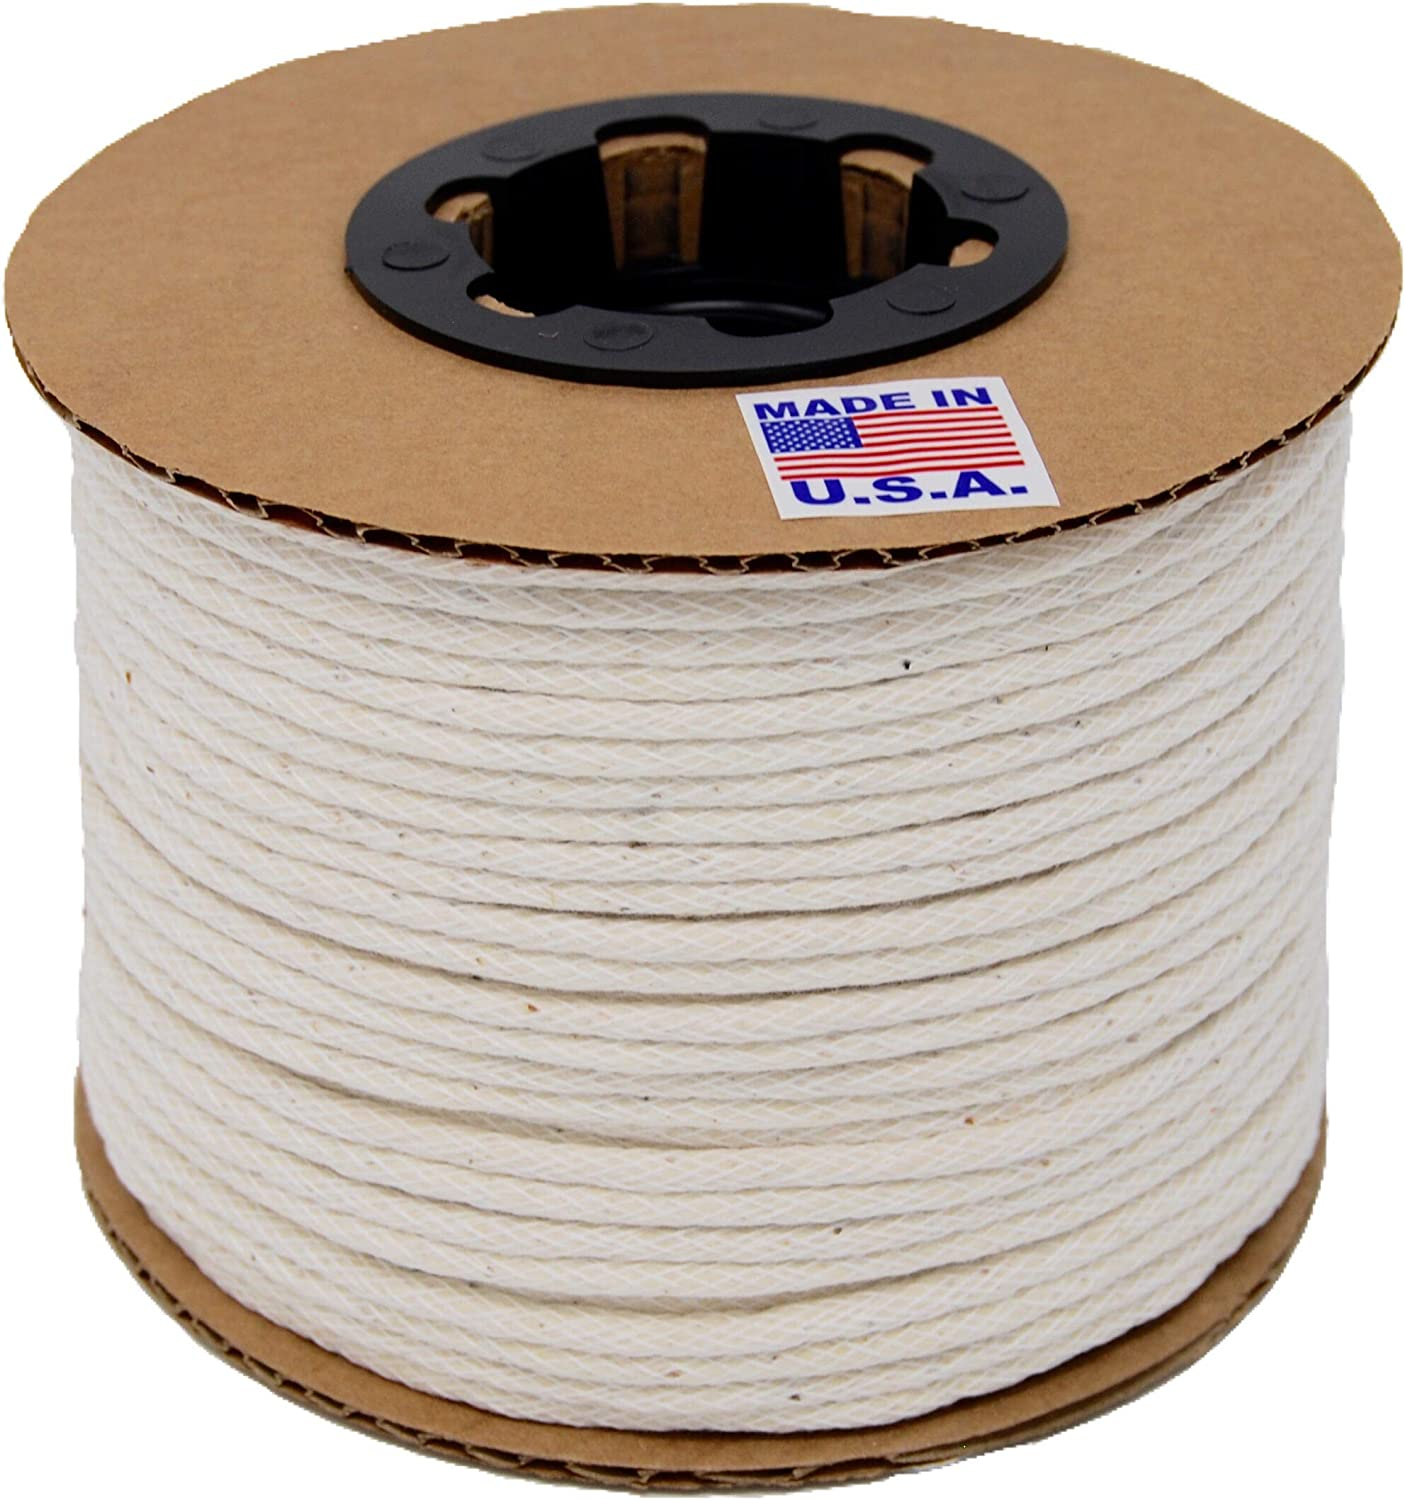 6//32 250 Yards//Spool #1-3//16 Cotton Piping Welt Cord Made in USA